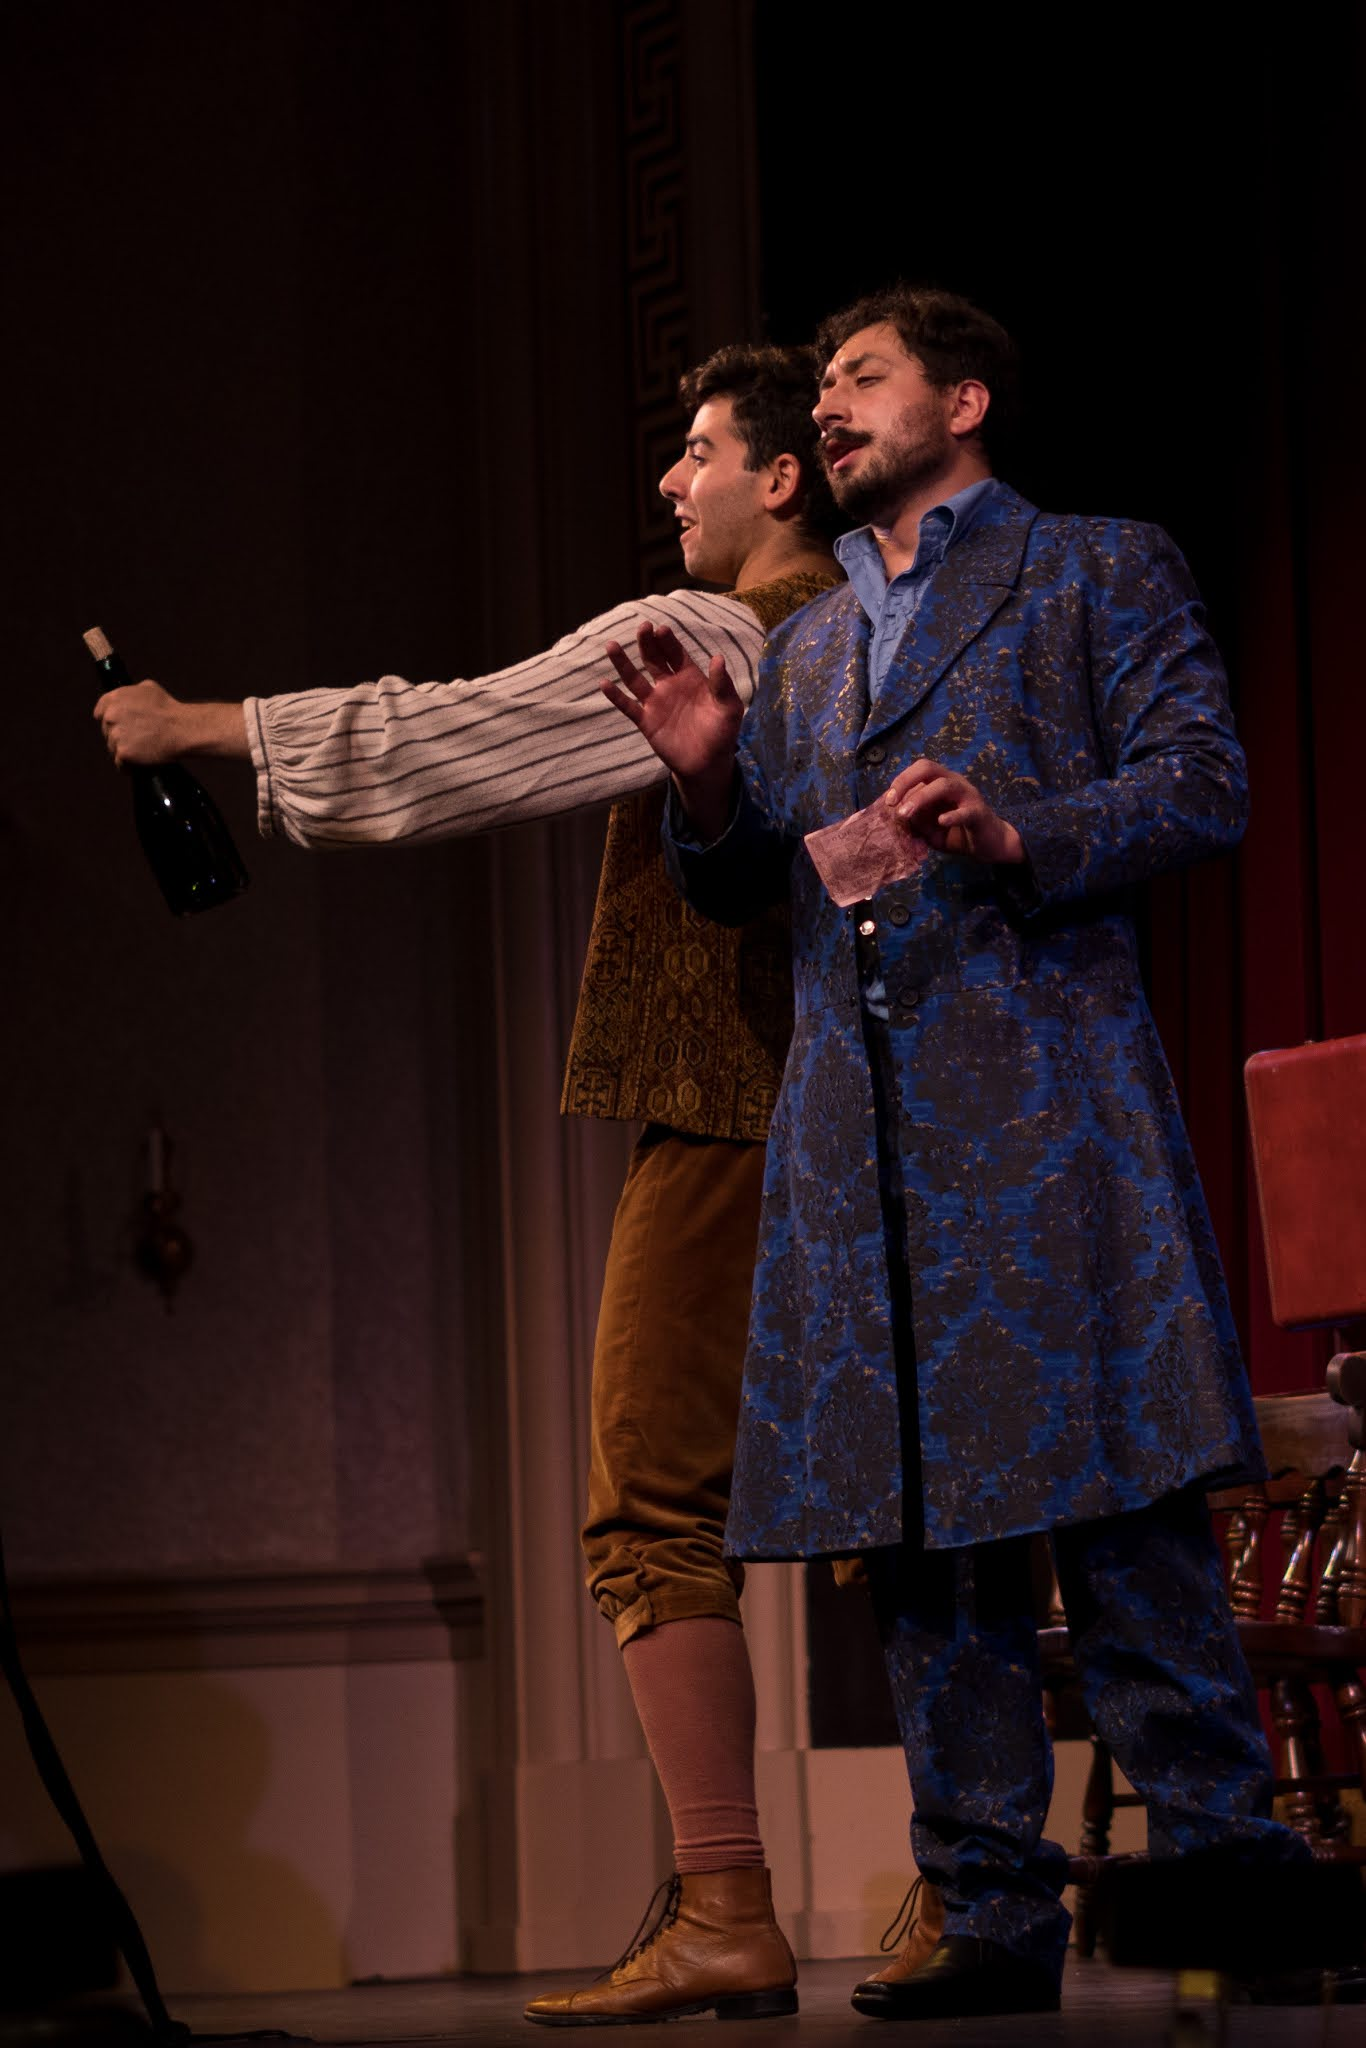 IN REVIEW: tenor JORDAN COSTA as Nemorino (left) and bass OLIVER POVEDA-ZAVALA as Dulcamara (right) in the Sapphire Cast of Opera in Williamsburg's September 2021 production of Gaetano Donizetti's L'ELISIR D'AMORE [Photograph © by Diego Valdez]